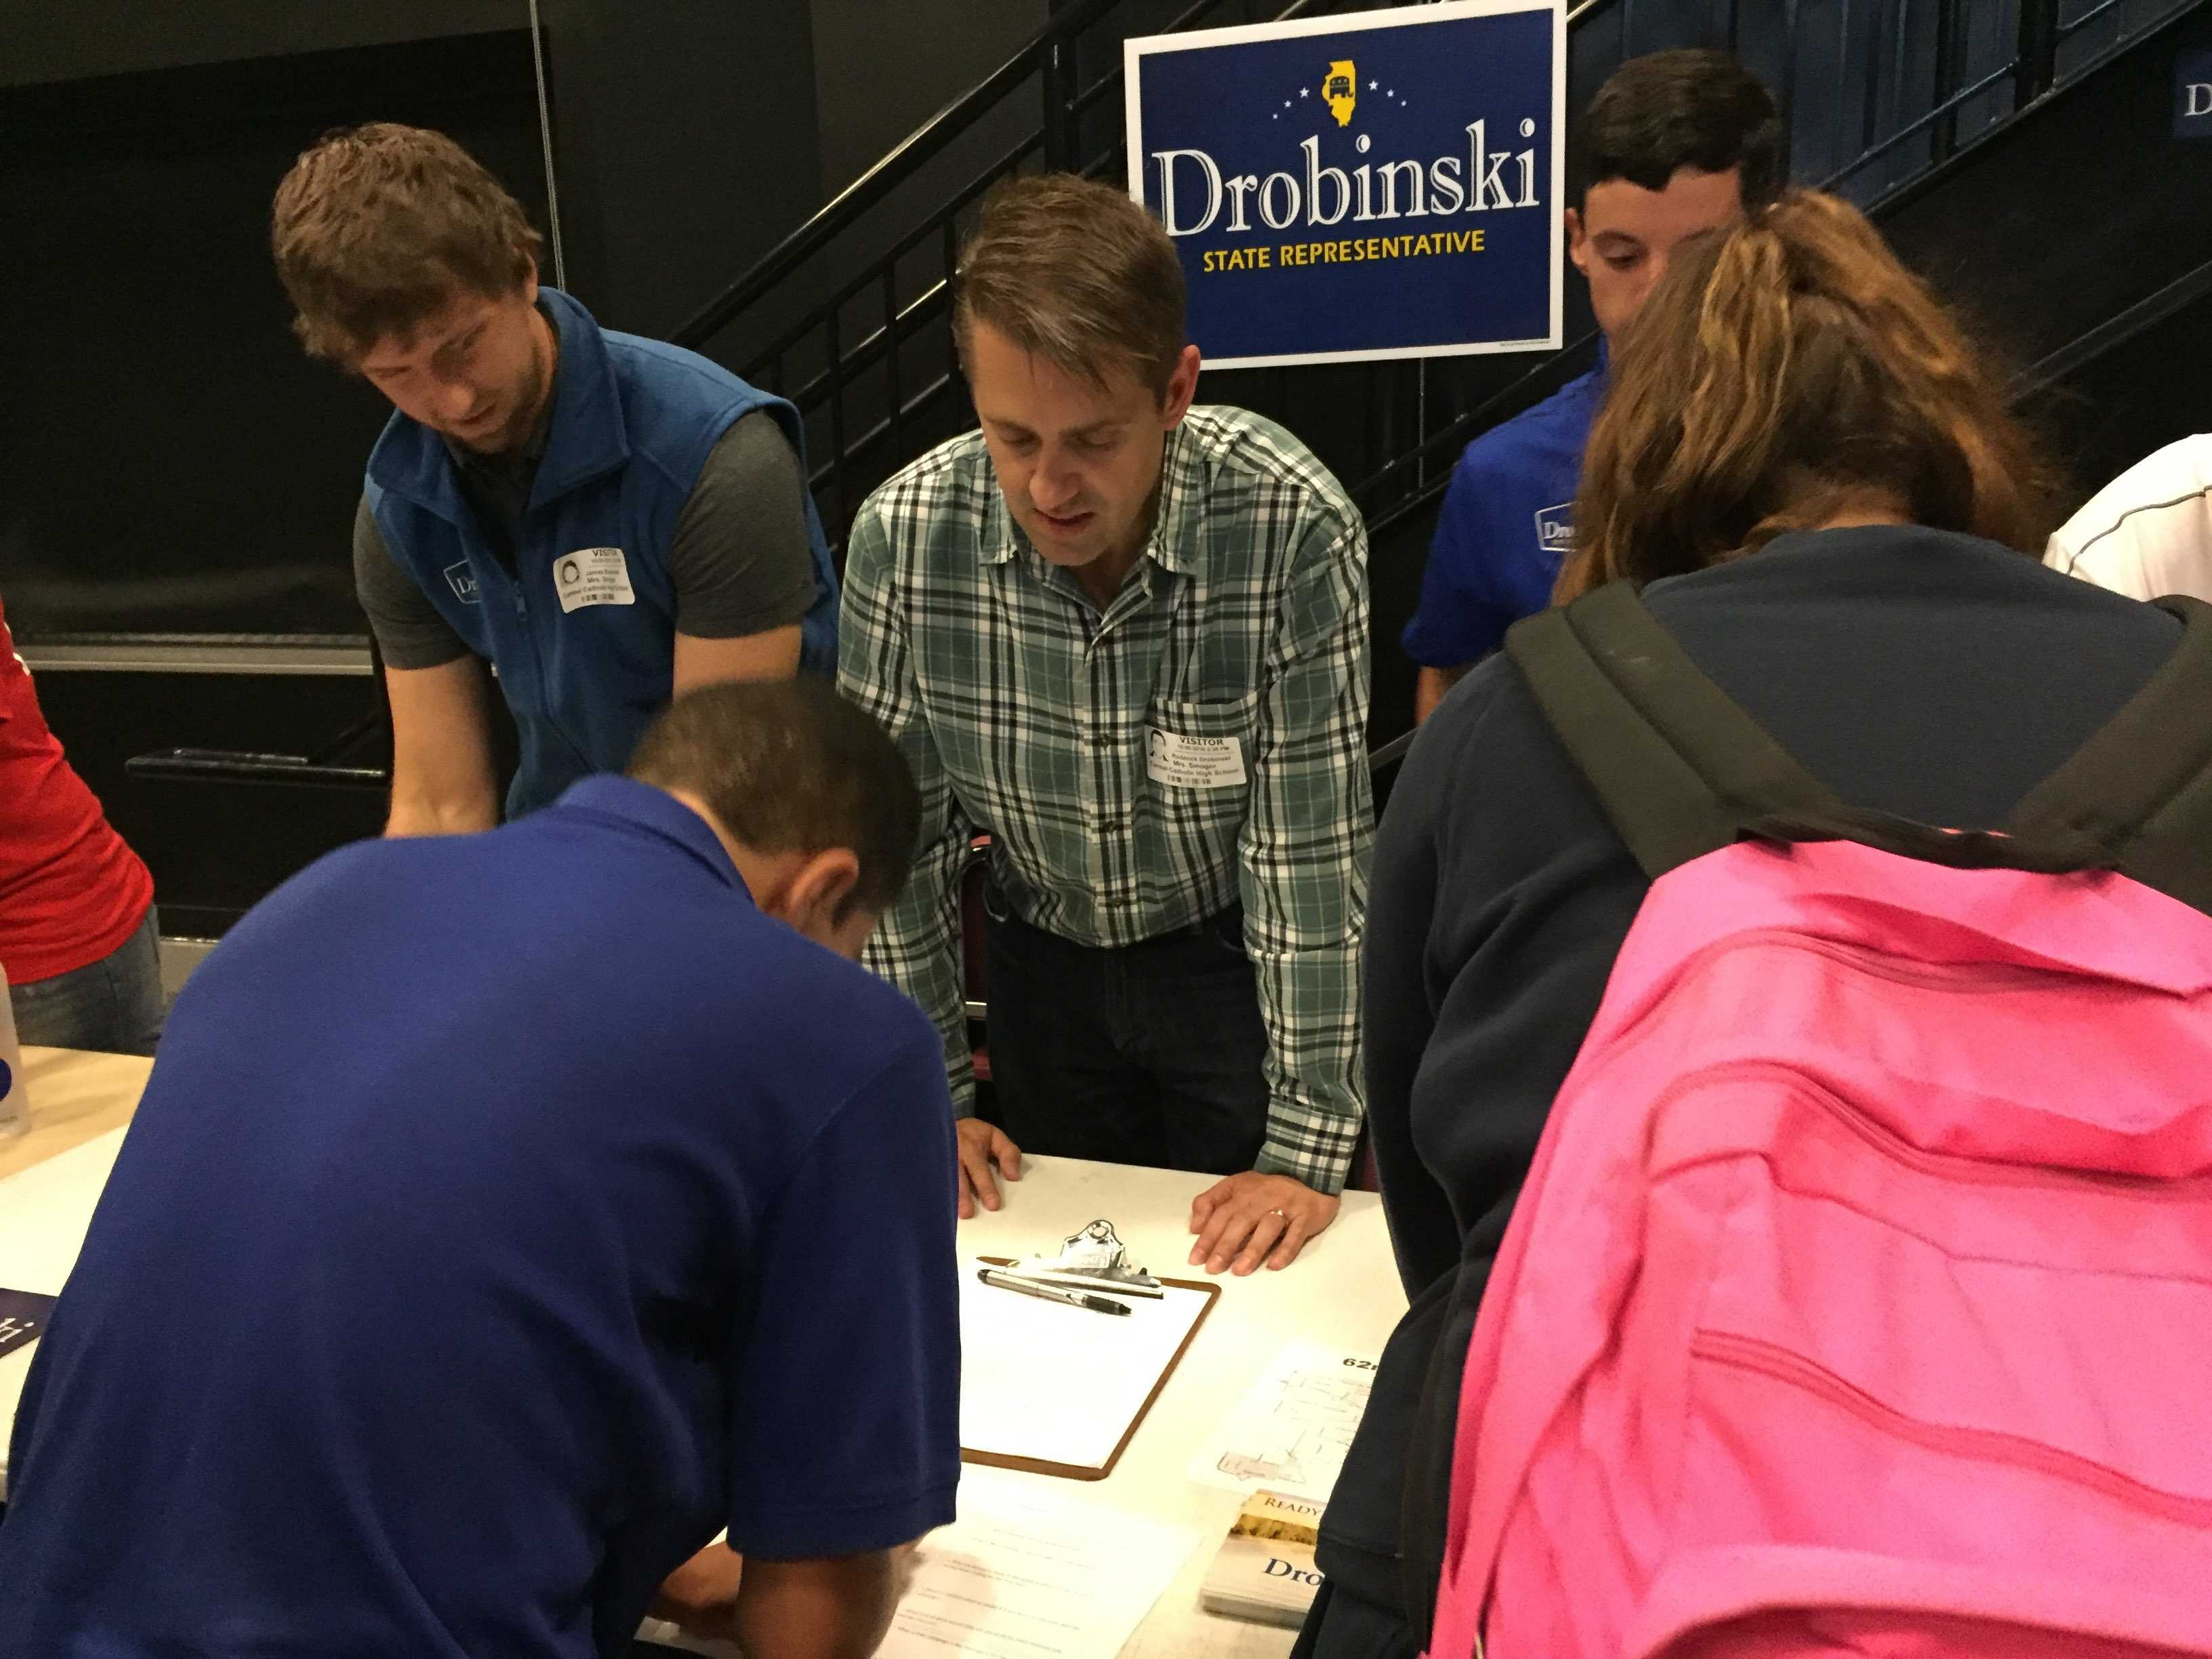 Republican+candidate+Rod+Drobinski+explains+his+positions+to+AP+government+students.